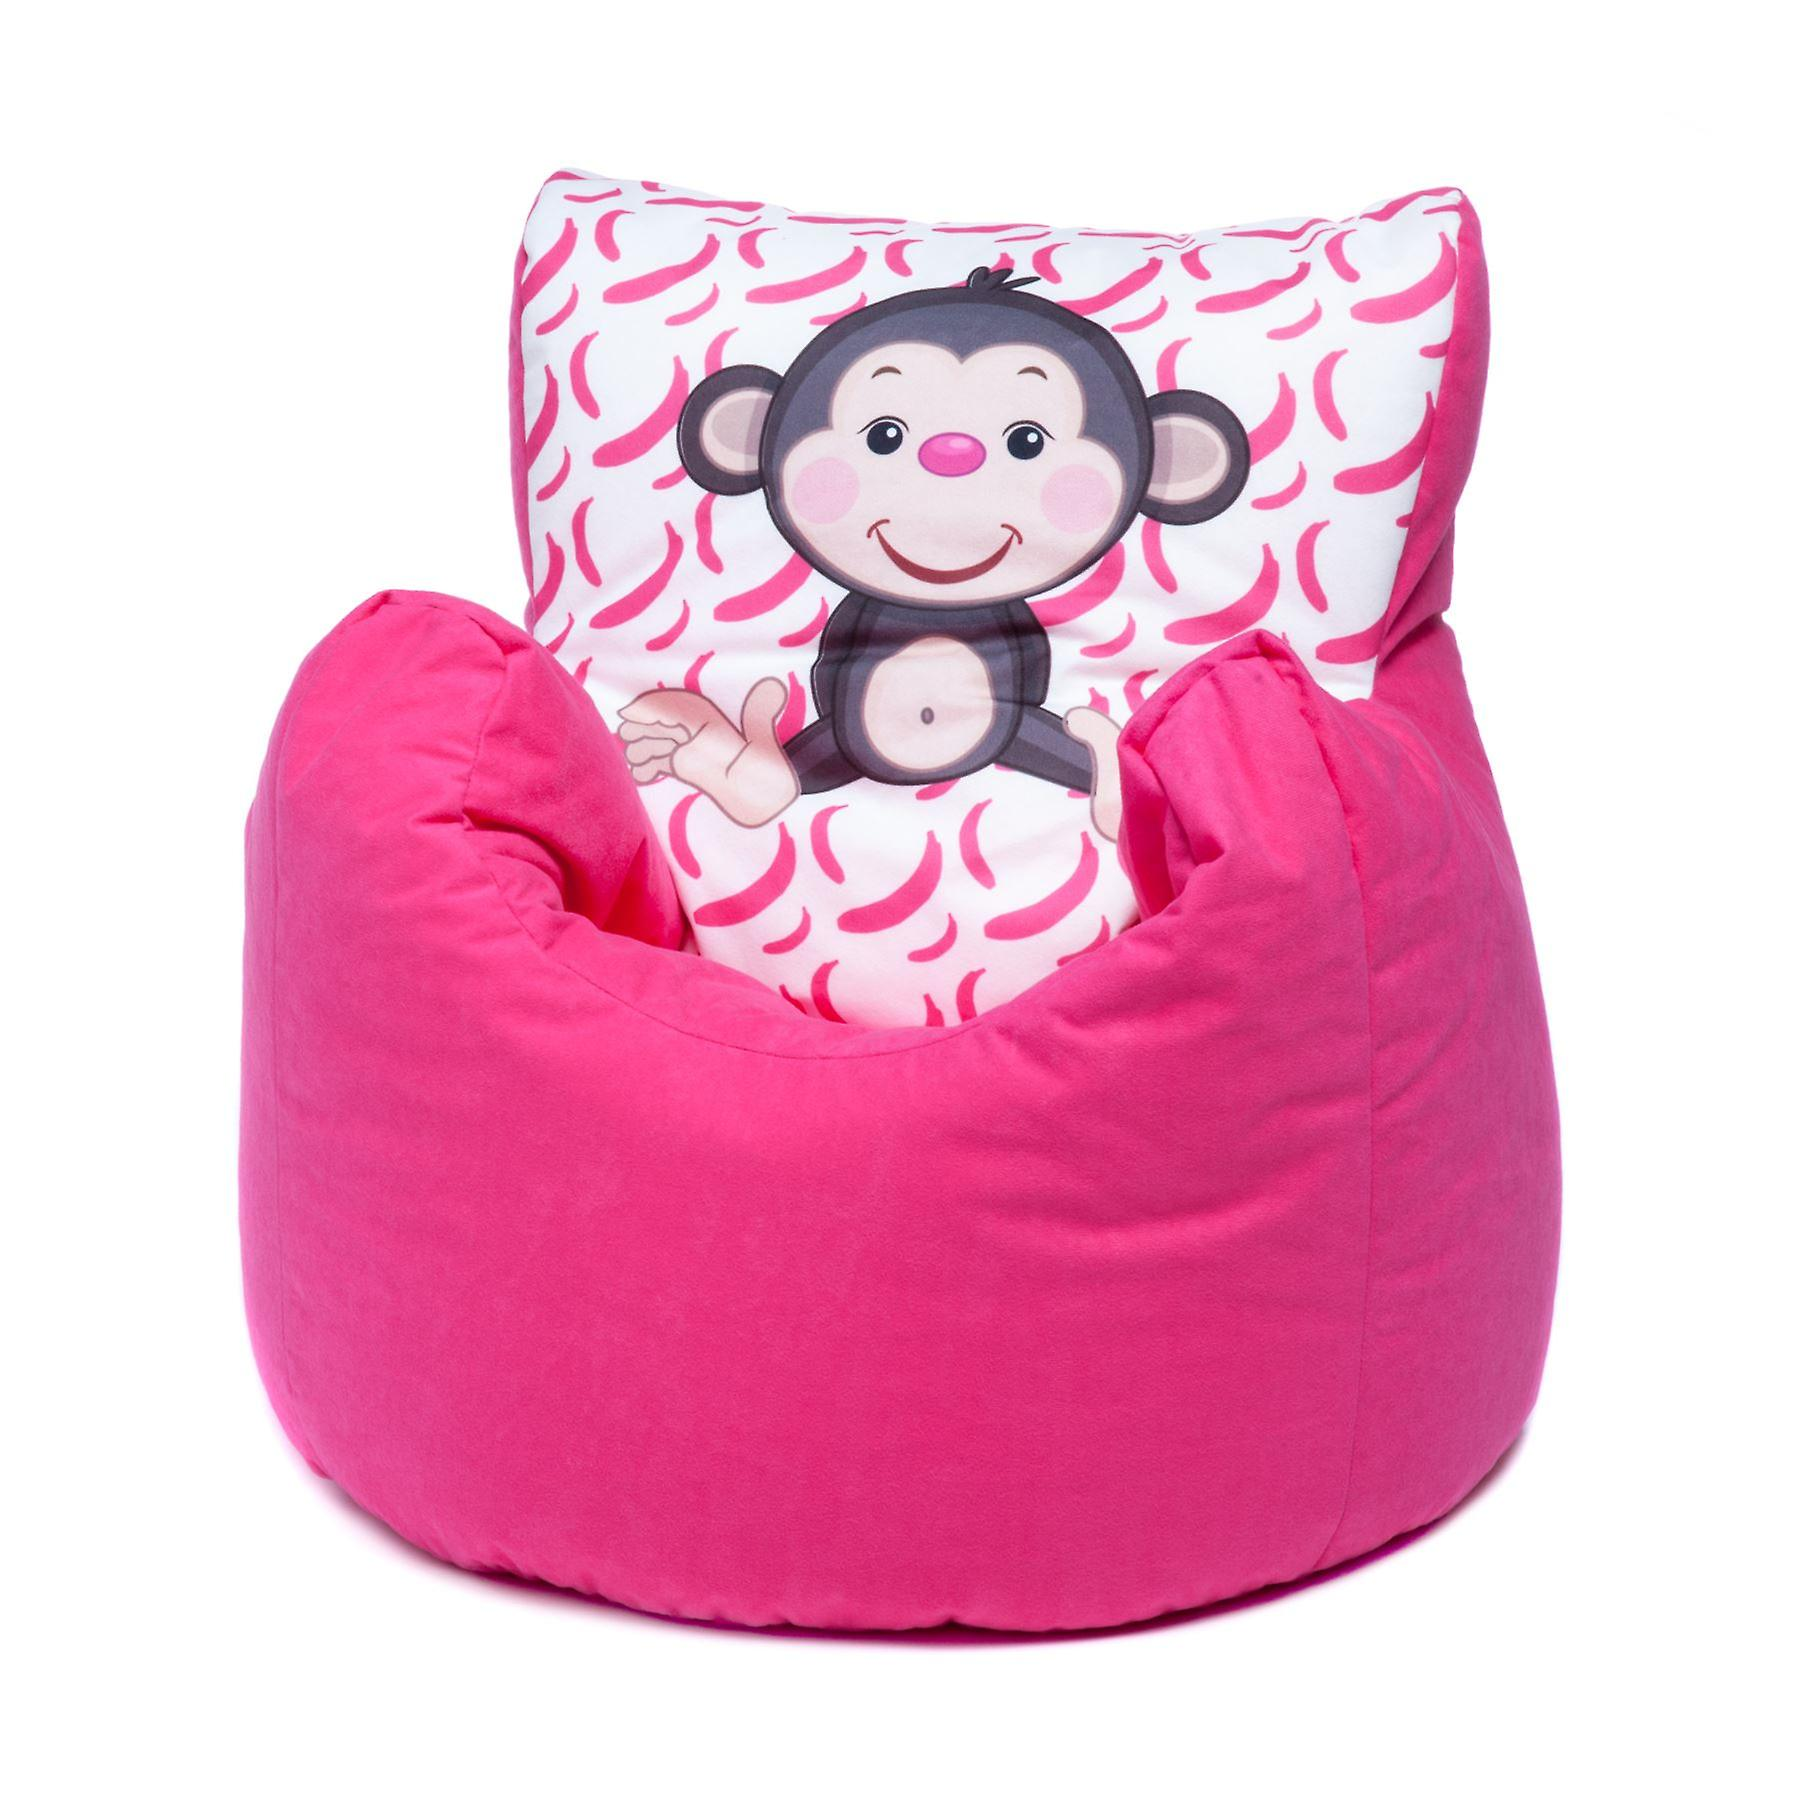 Pleasant Loft 25 Toddler Animal Print Soft Plush Bean Bag Chair Monkey Pink Ocoug Best Dining Table And Chair Ideas Images Ocougorg